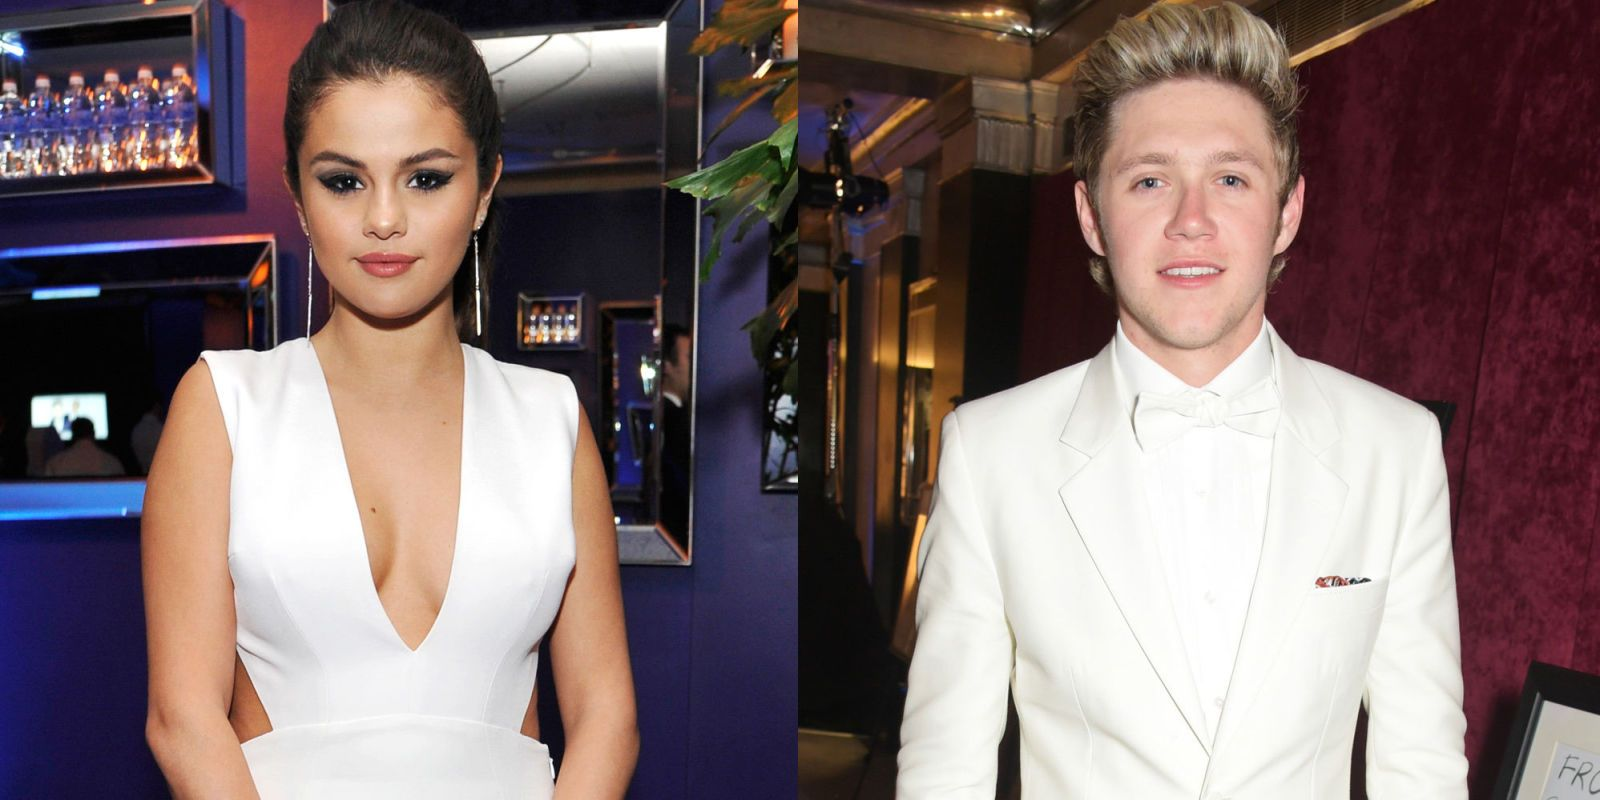 Is Niall Horan Really Dating Selena Gomez